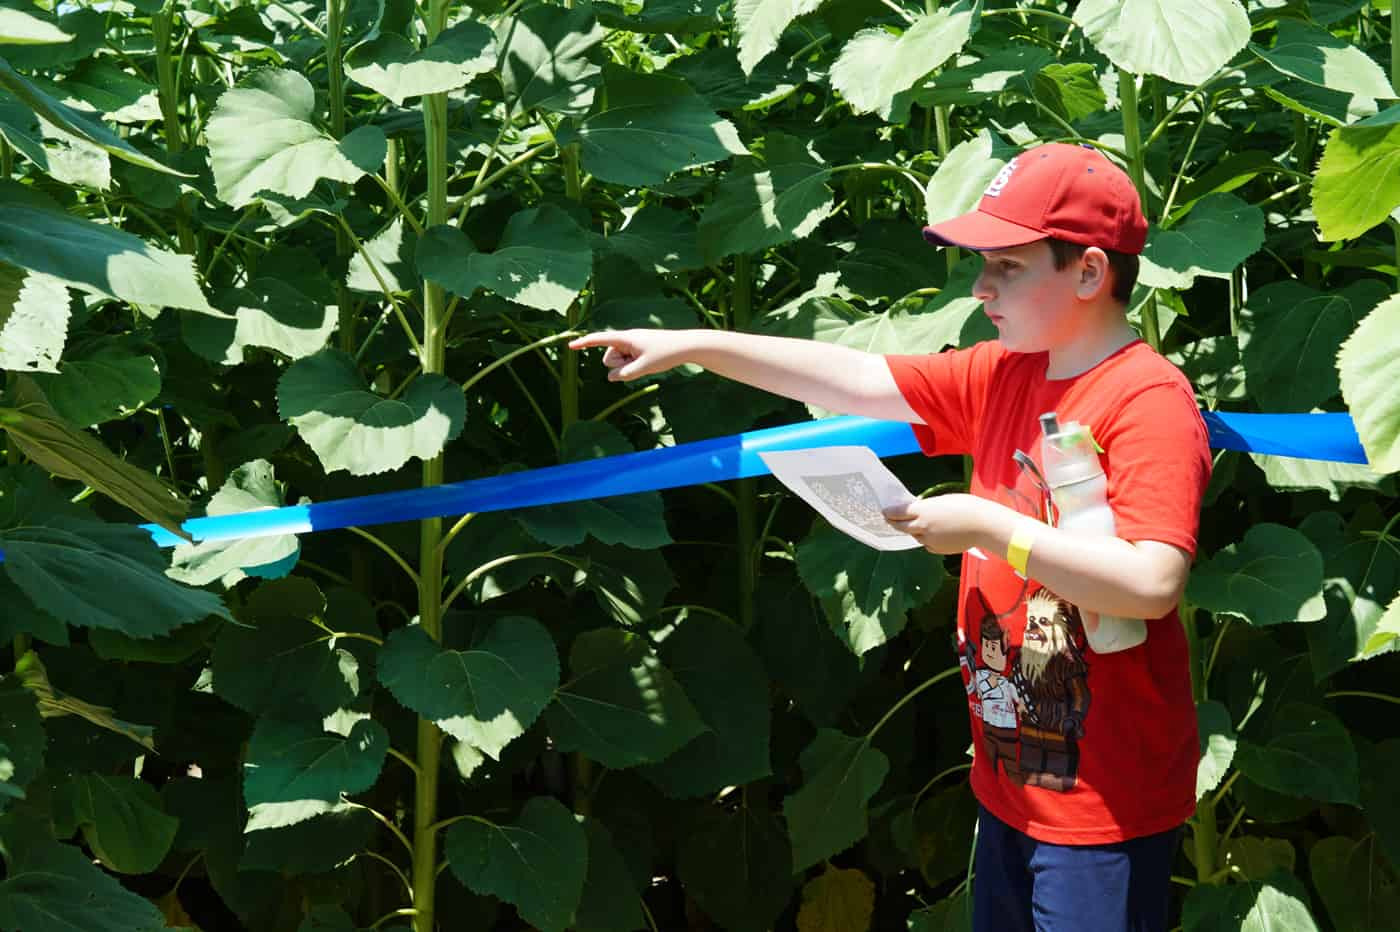 kid in red shirt standing in a sunflower maze points the way out at Eckert's farm